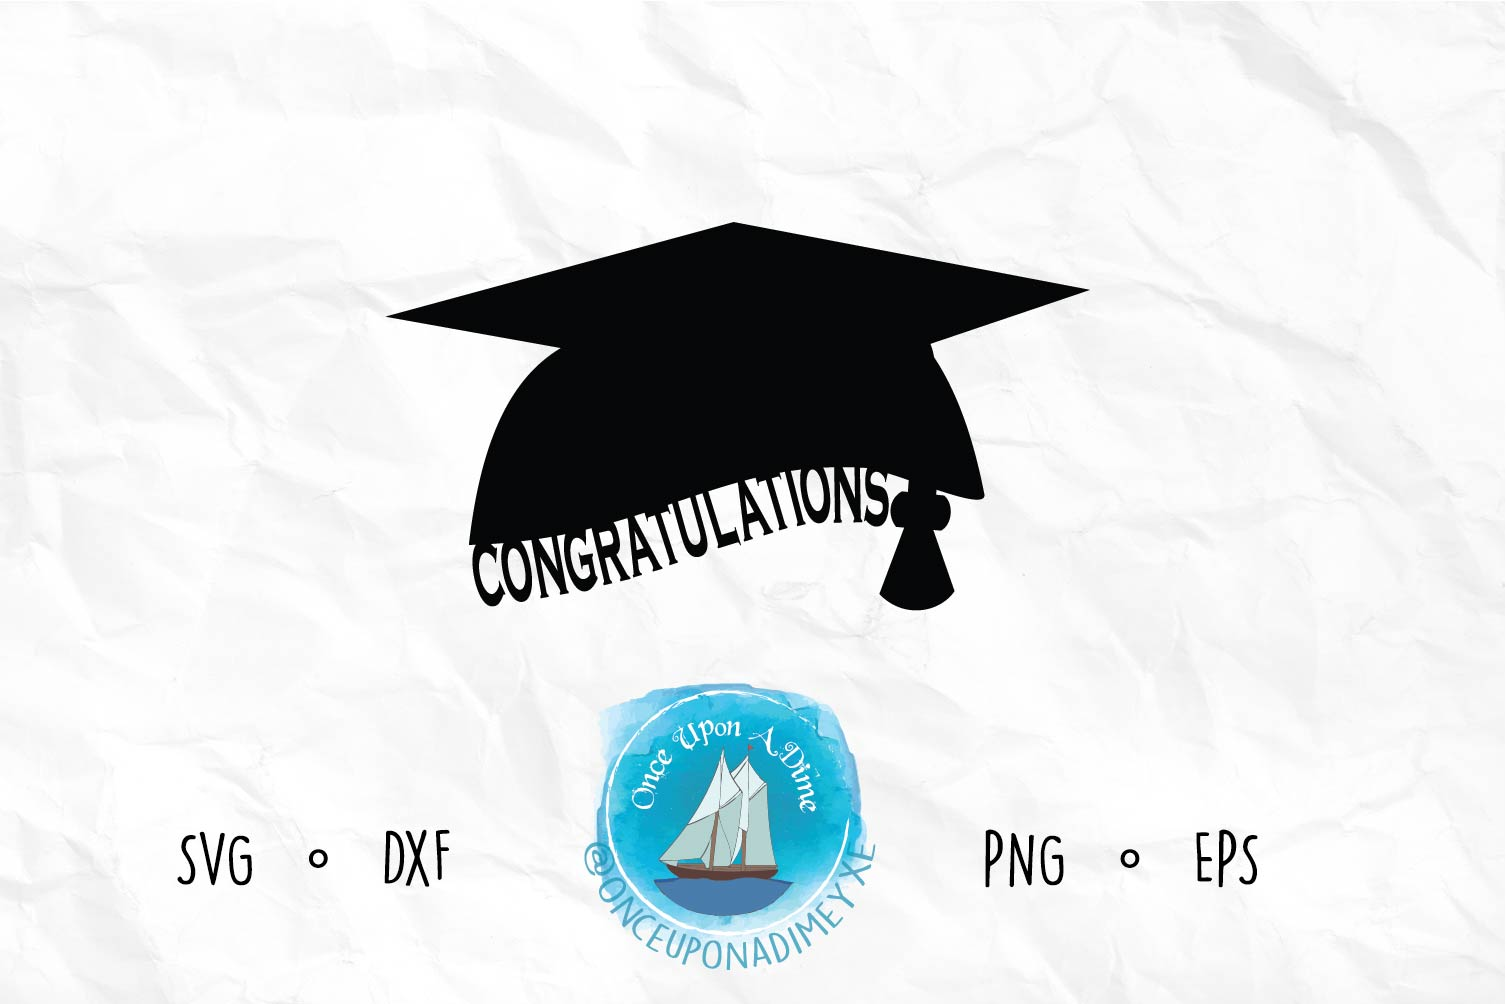 Download Free Congratulations Grad Graduation Graphic By Onceuponadimeyxe for Cricut Explore, Silhouette and other cutting machines.